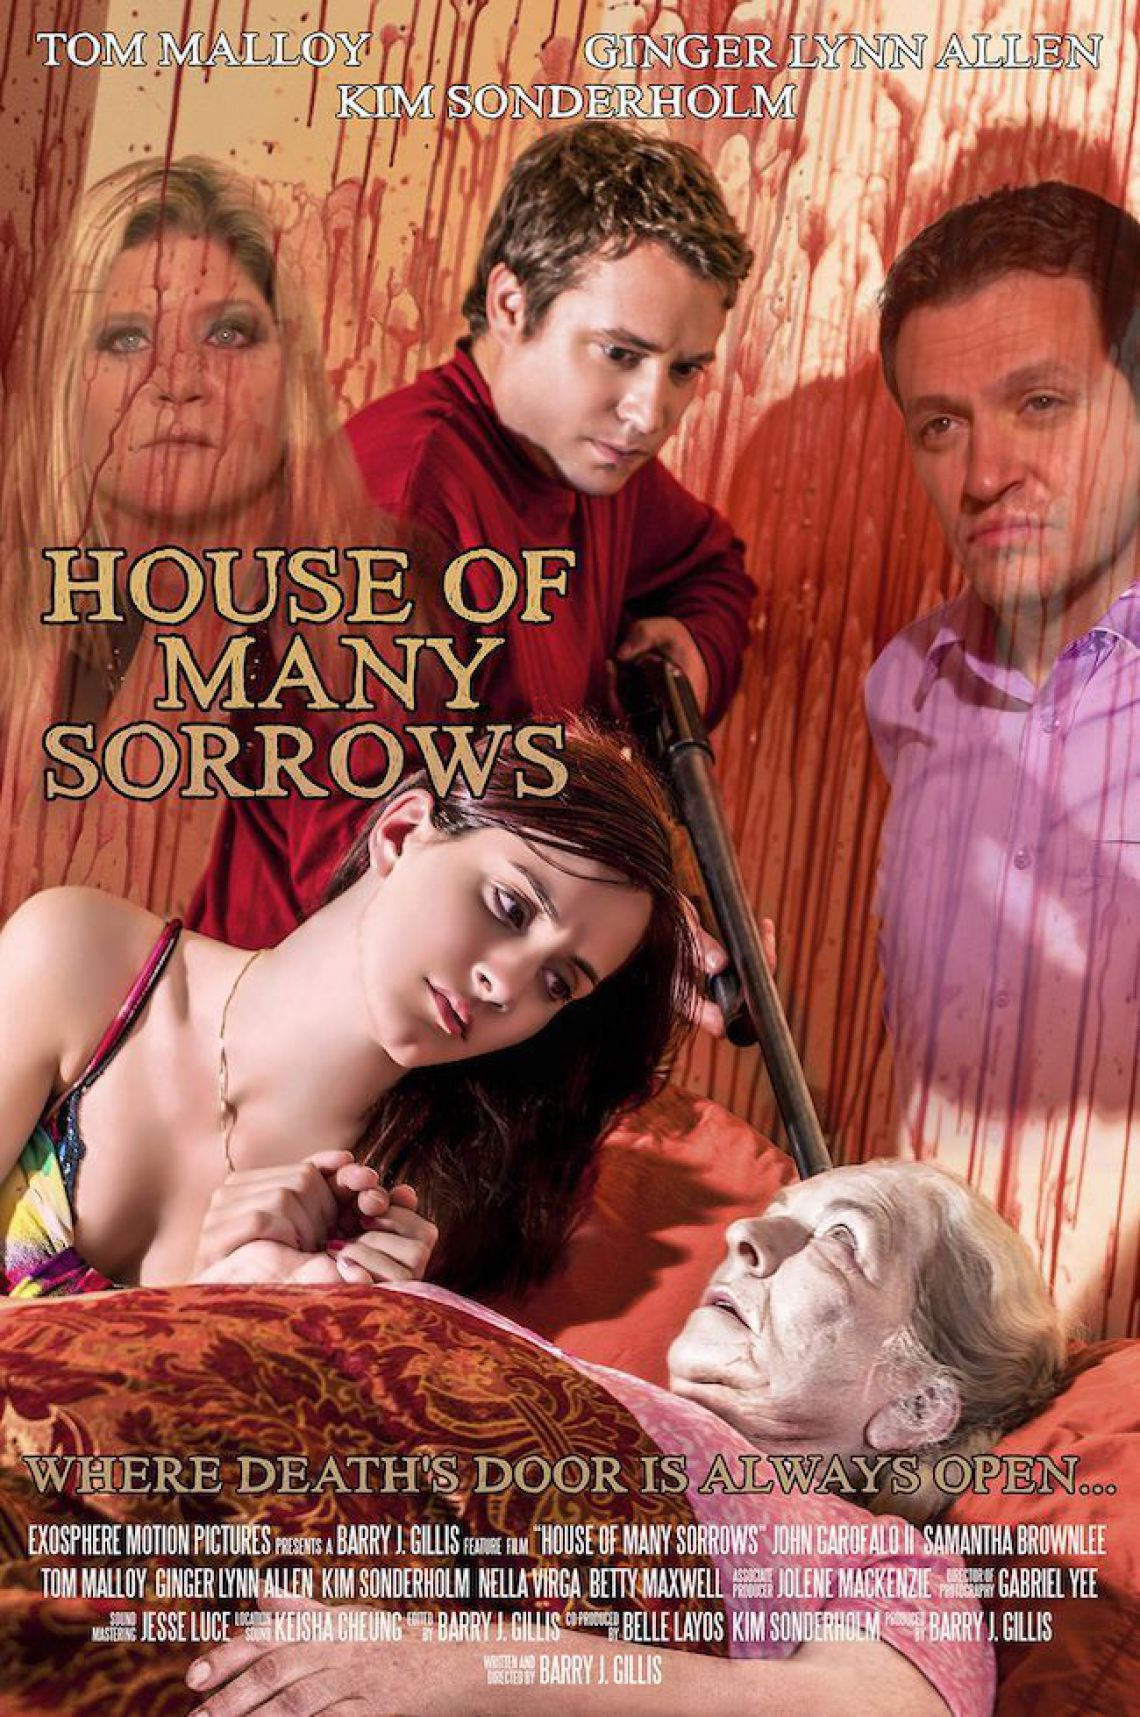 http://severedbloodlines.com/severed-cinema/images/news/laurence-r-harvey/house-of-many-sorrows-poster.jpg